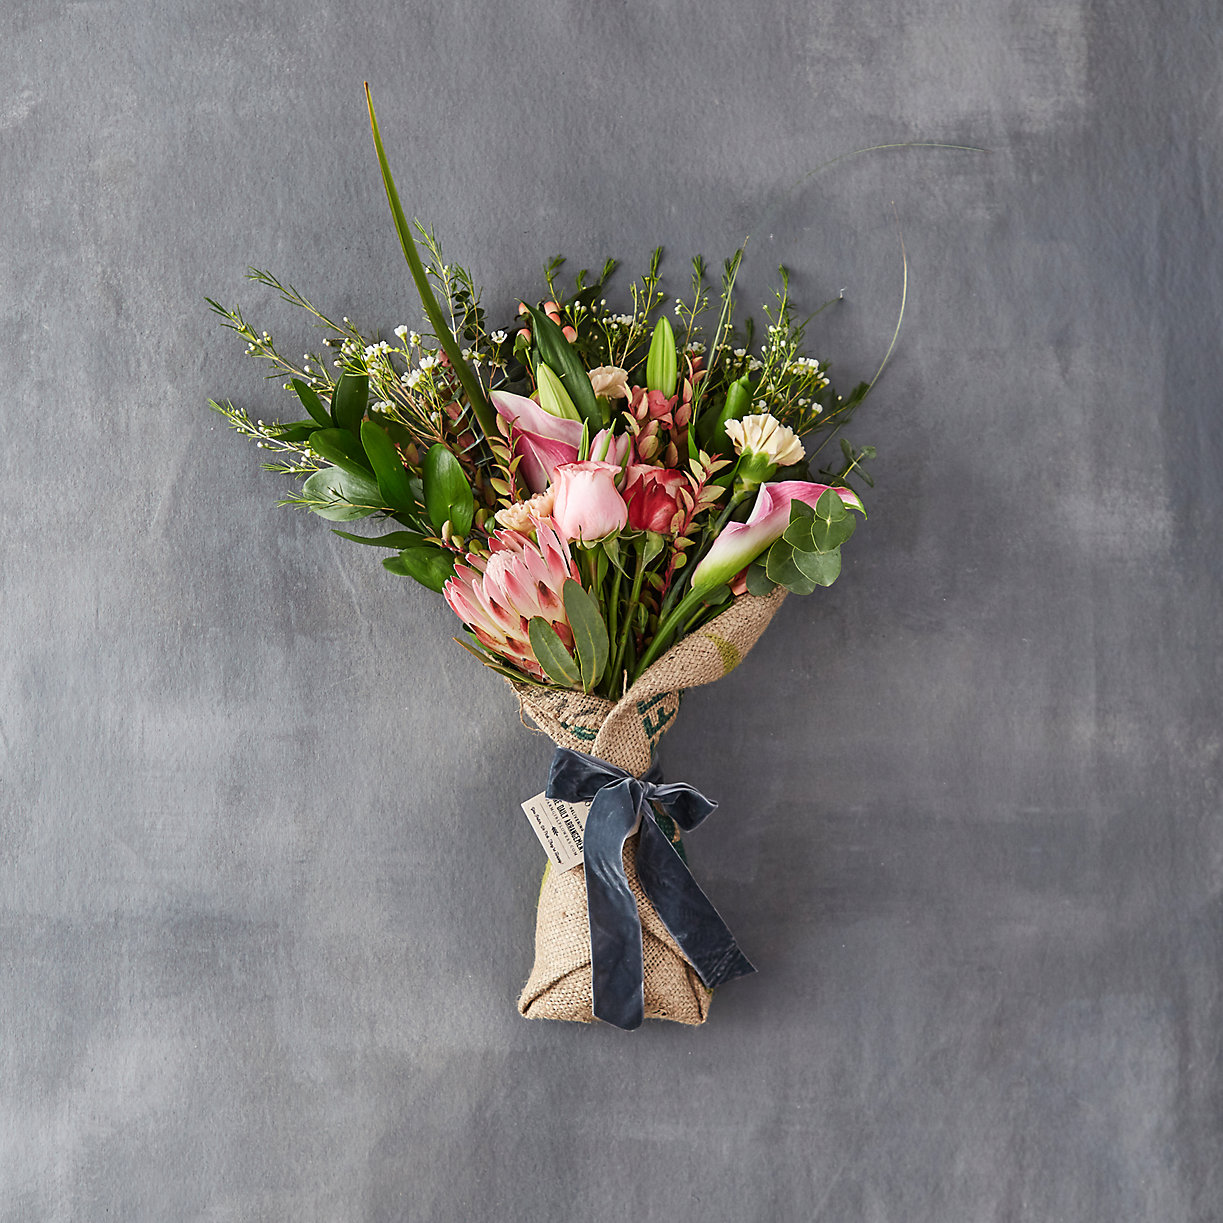 A fresh bouquet of flowers from Terrain